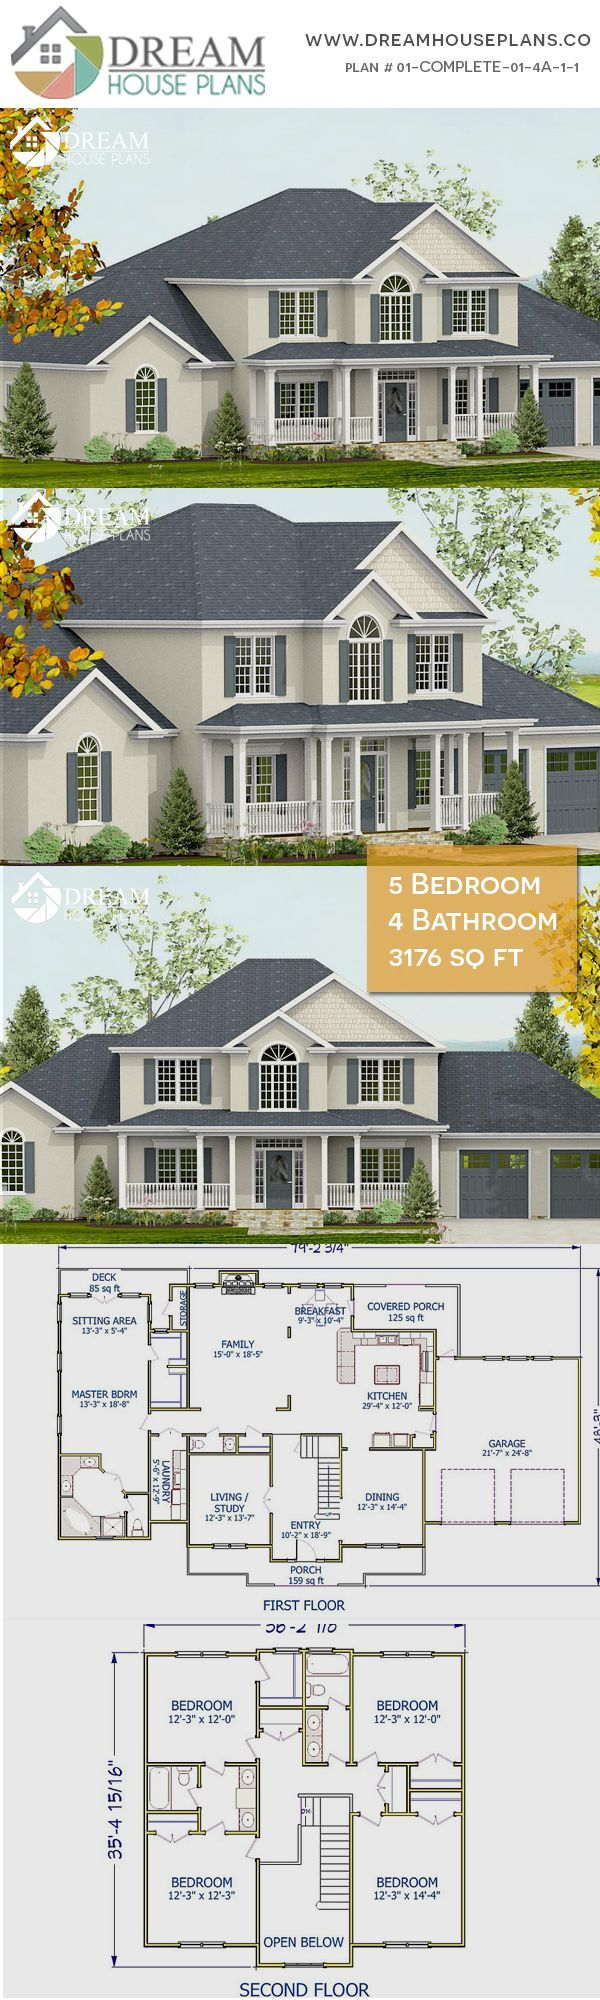 Dream House Plans Affordable yet luxury Southern 5 Bedroom 3176 Sq Ft house